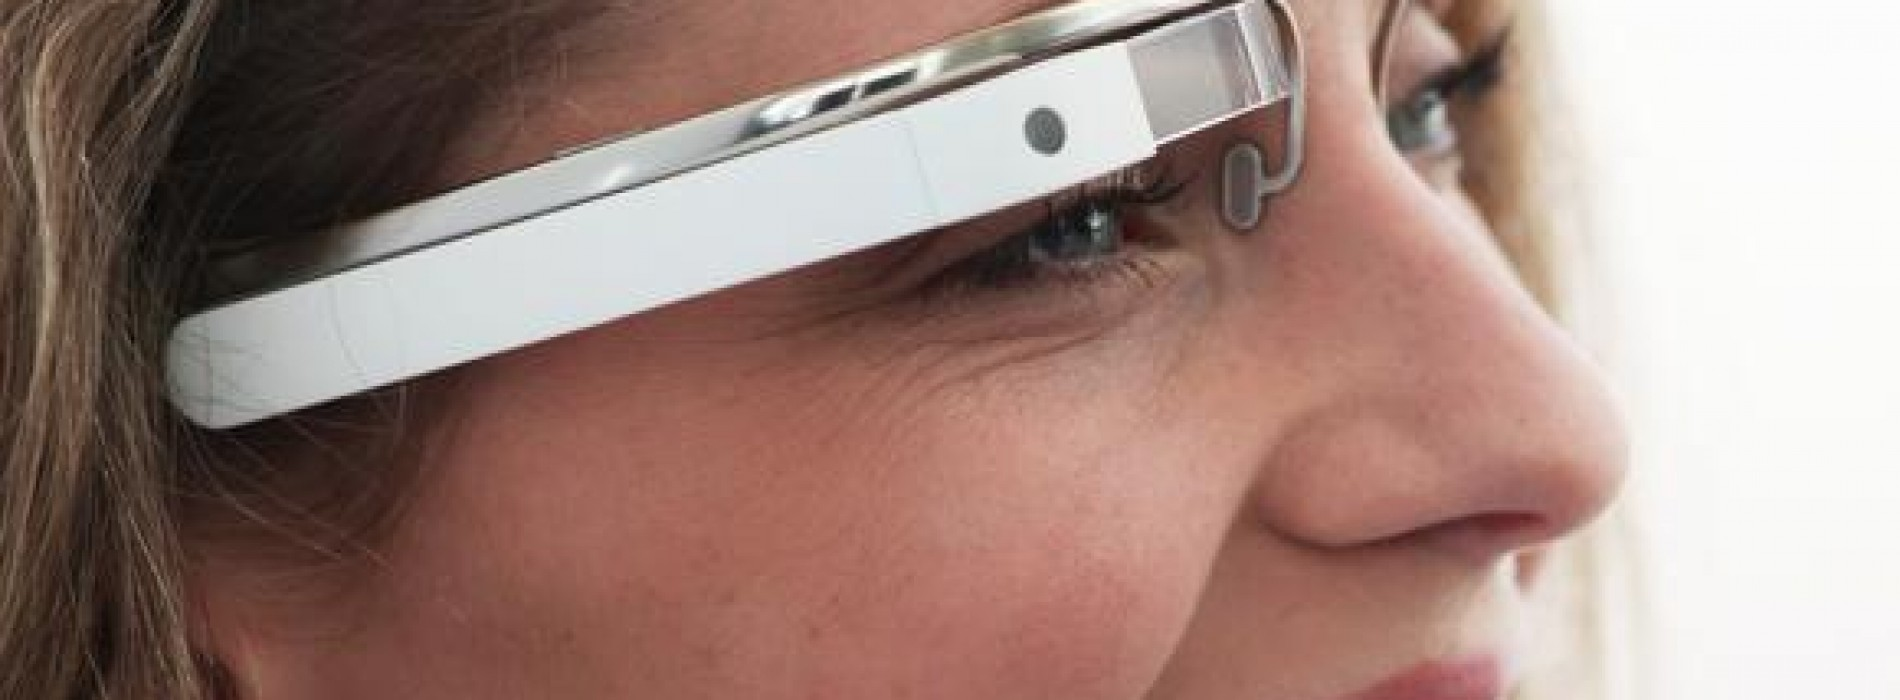 Google Glass early adopter reveals further clues on software, hardware – same CPU family as Galaxy Nexus